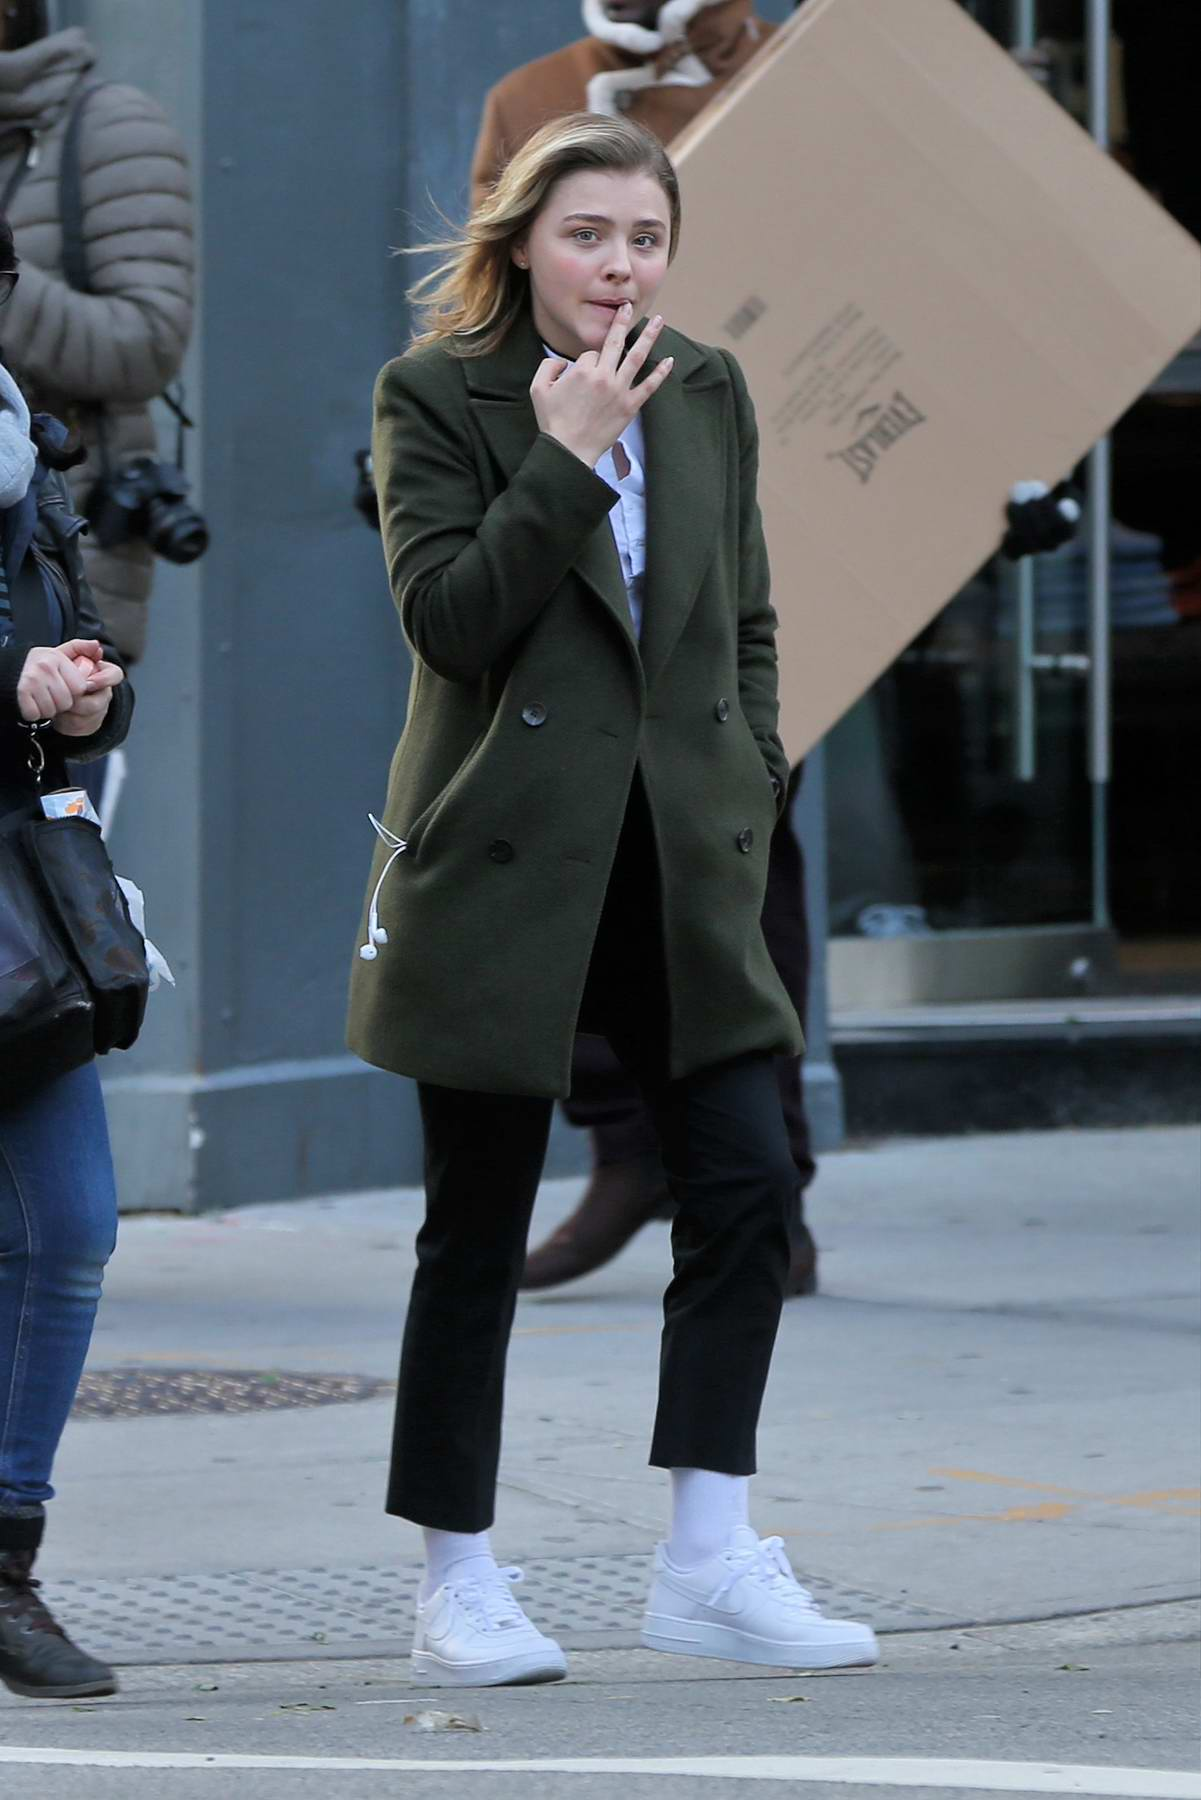 Chloe Grace Mortez rides a city bus filming 'The Widow' in New York City